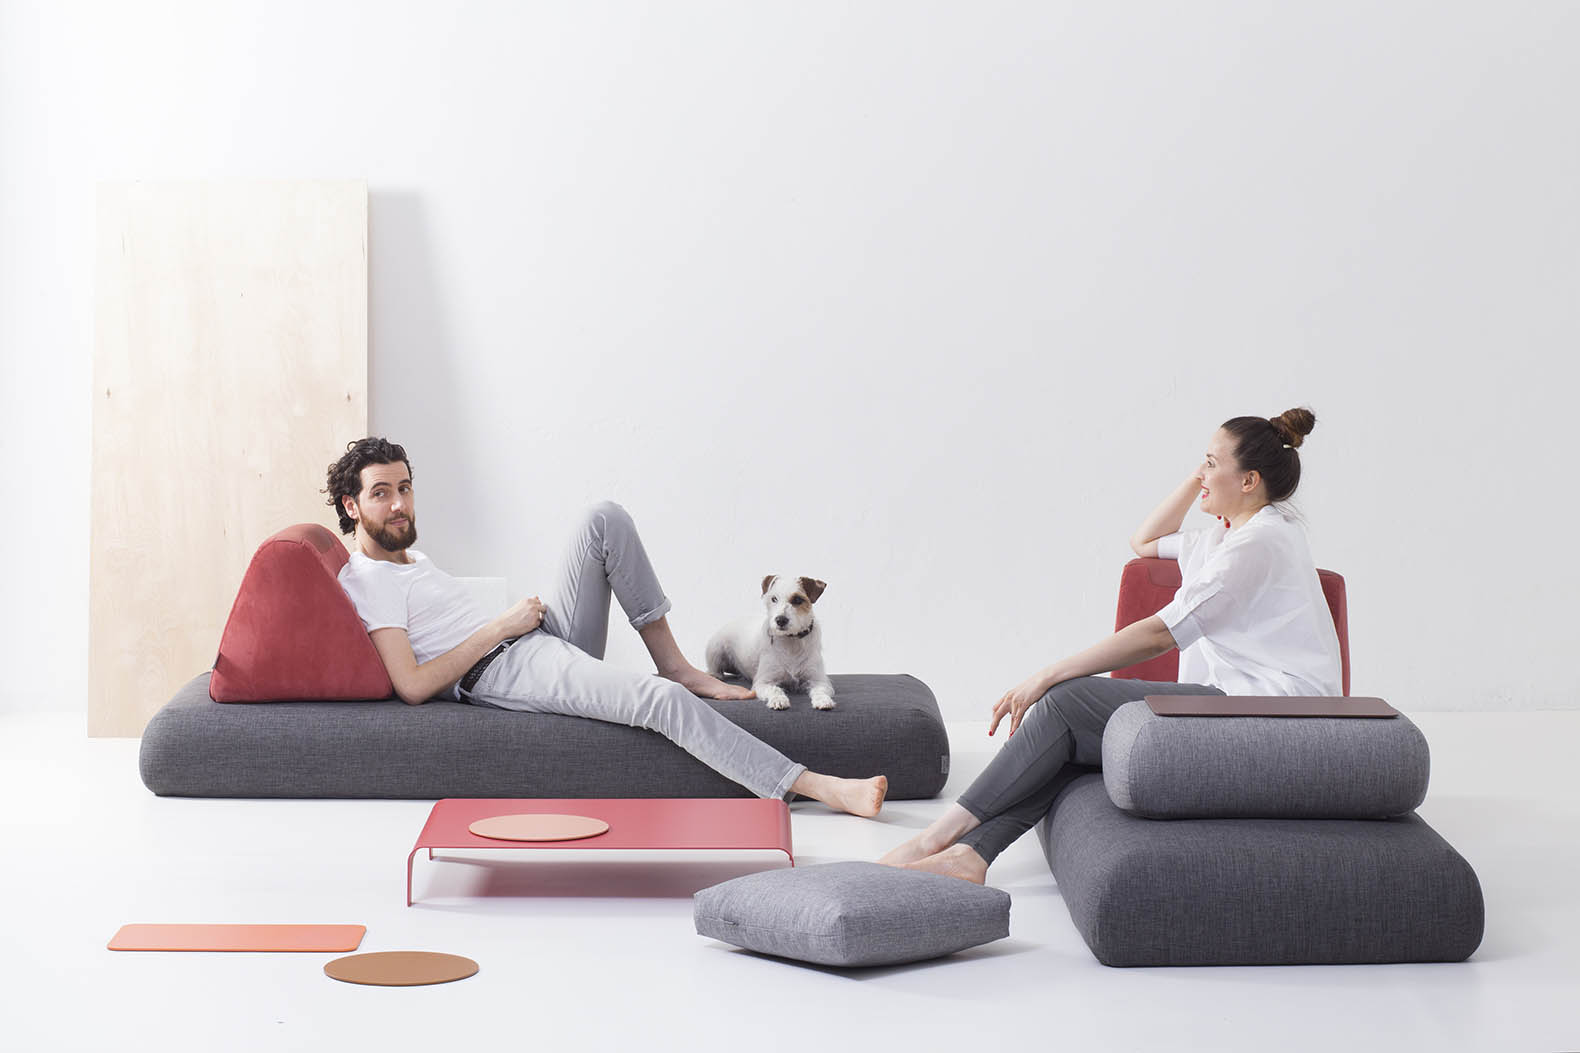 Charmant Box Hyperactive Sofa Can Be Transformed To Suit Any Space | Inhabitat    Green Design, Innovation, Architecture, Green Building